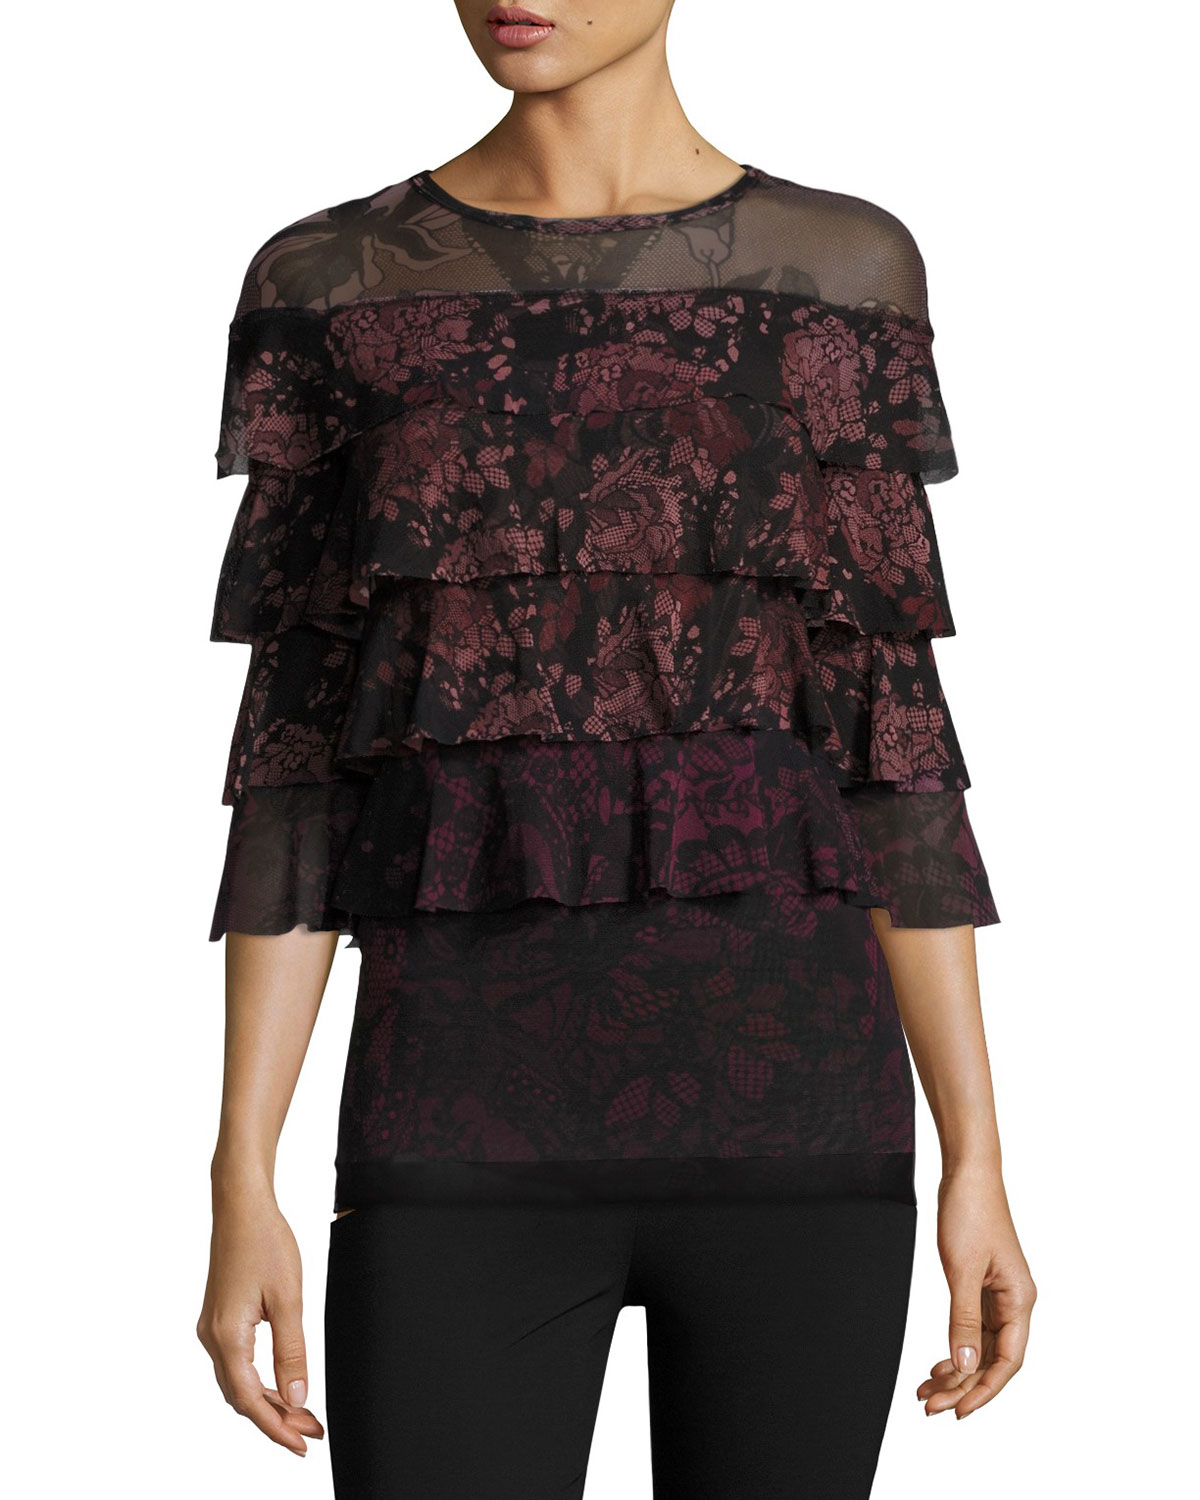 3/4-Sleeve Ruffled Floral Lace-Print Blouse, Black/Pink